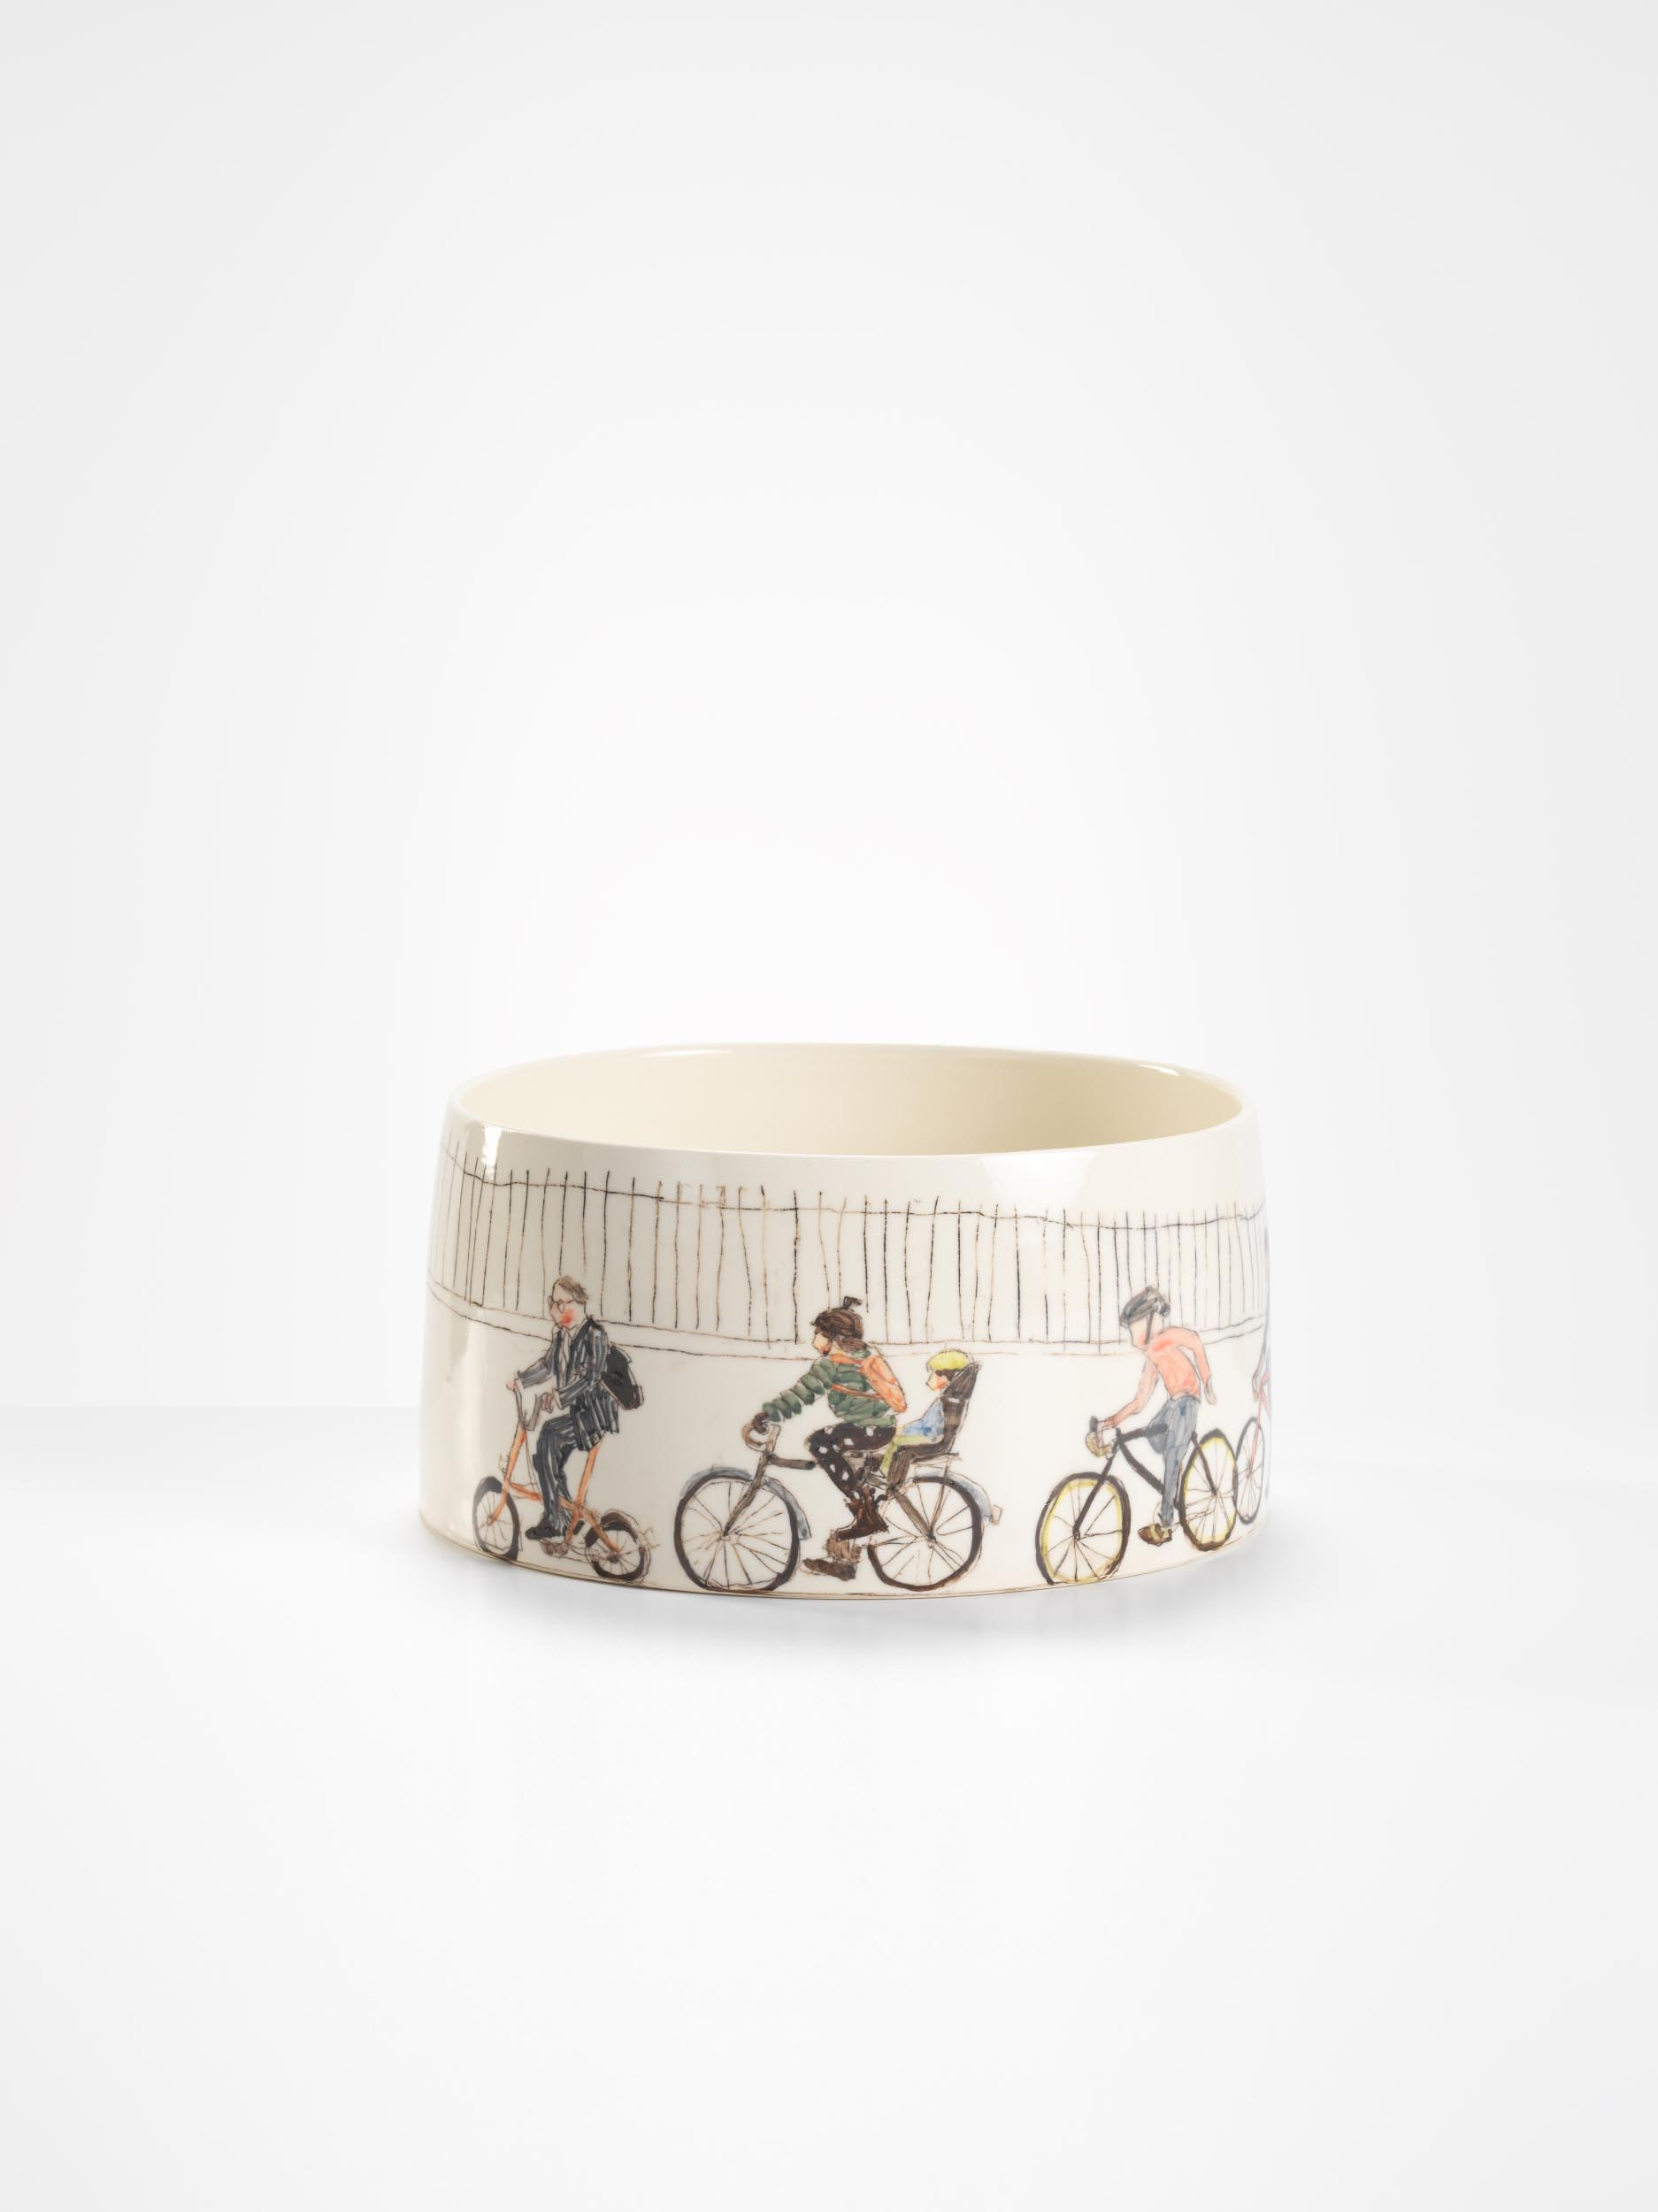 London cyclists, 2017, wheel-thrown and hand-painted porcelain, 30cm diameter